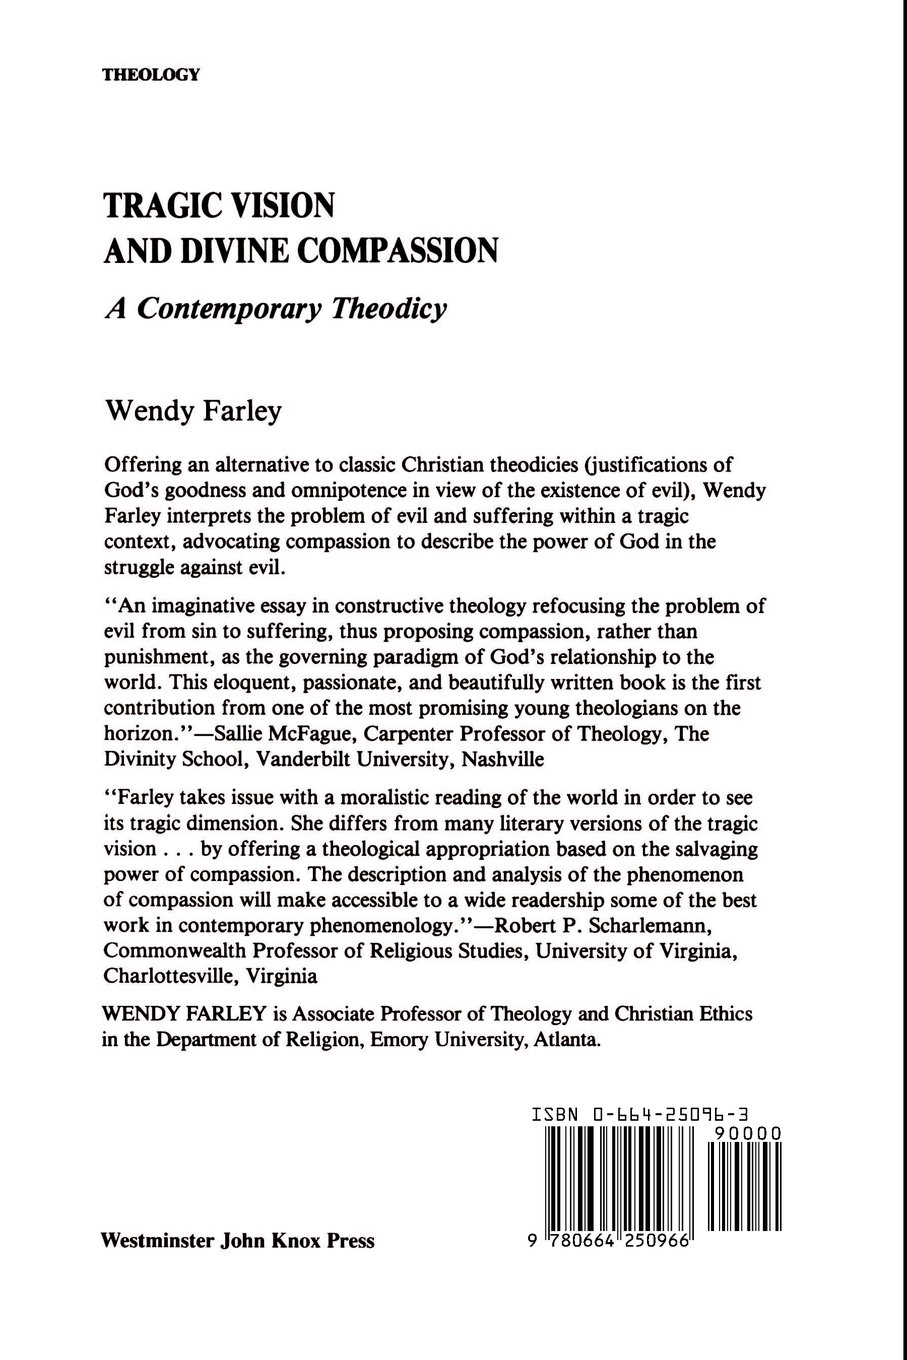 essay about compassion i believe essay compassion senior final ihs  tragic vision and divine compassion a contemporary theodicy tragic vision and divine compassion a contemporary theodicy factual essays